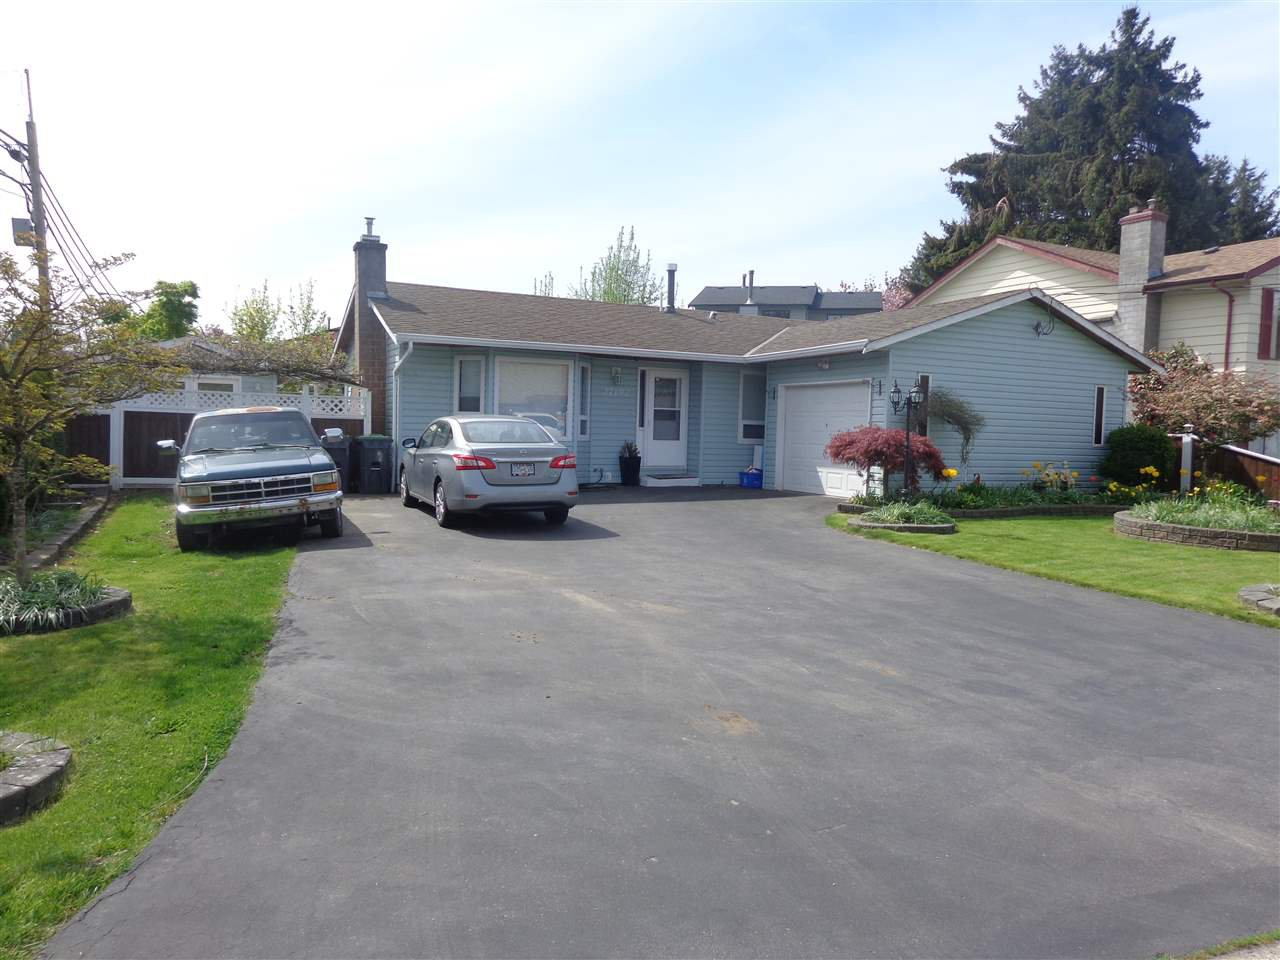 Main Photo: 27192 34 Avenue in Langley: Aldergrove Langley House for sale : MLS®# R2271507